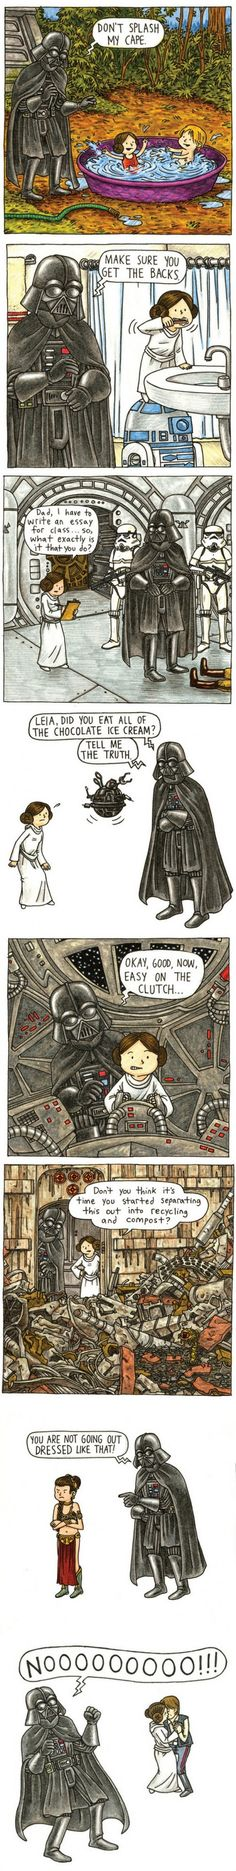 Vader's Little Princess//// hahahahahhahahahahhahaha at the last one!!!!